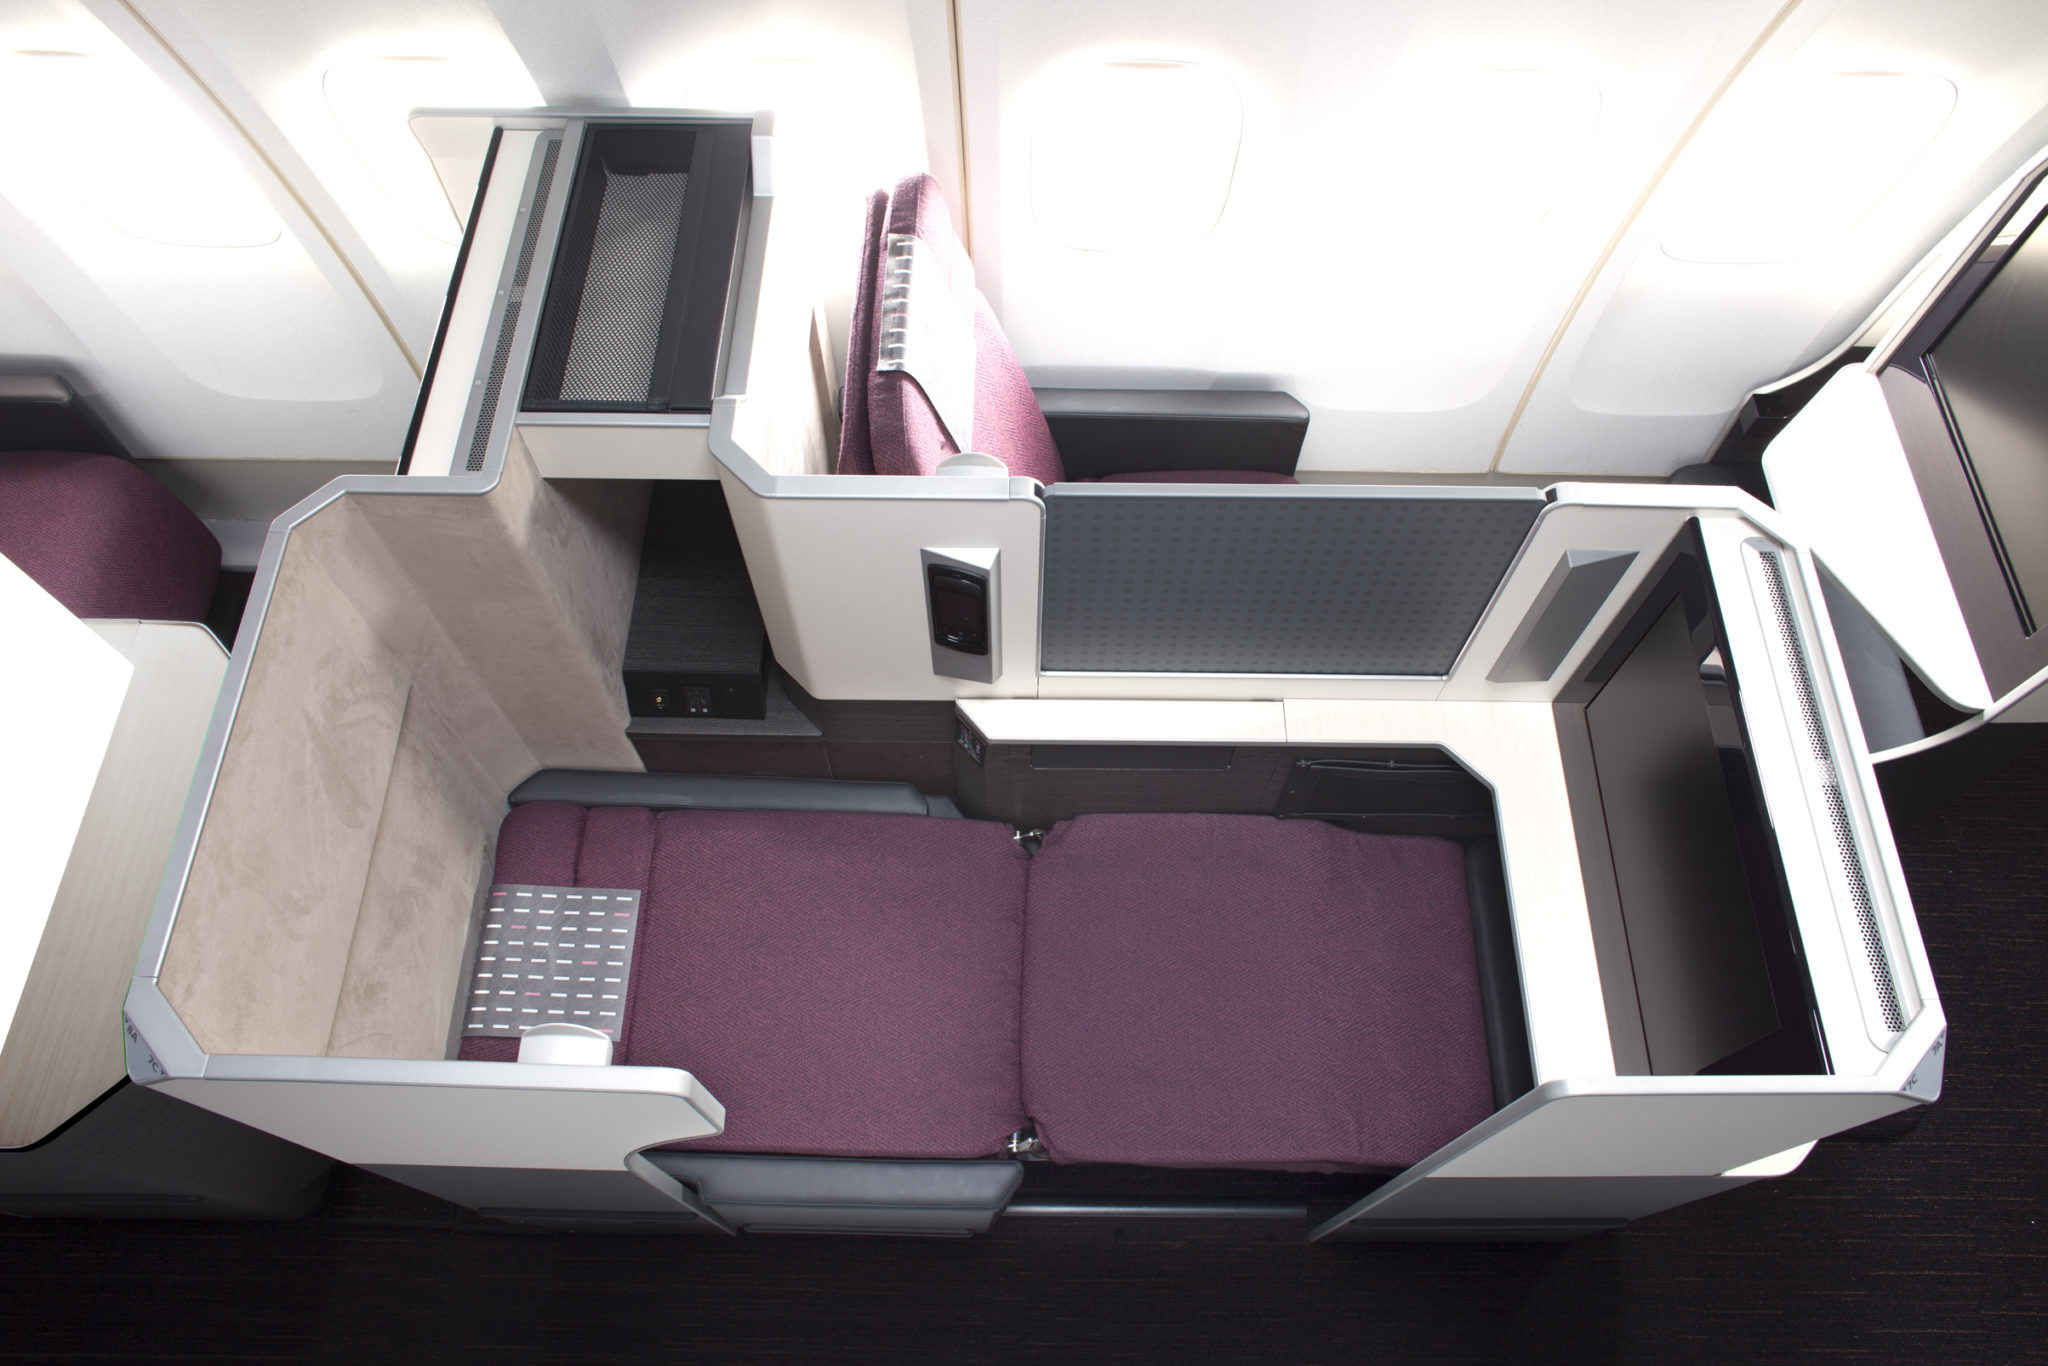 JAL uses the B_E Apex seat in a 2-3-2 configuration. Image - JAL